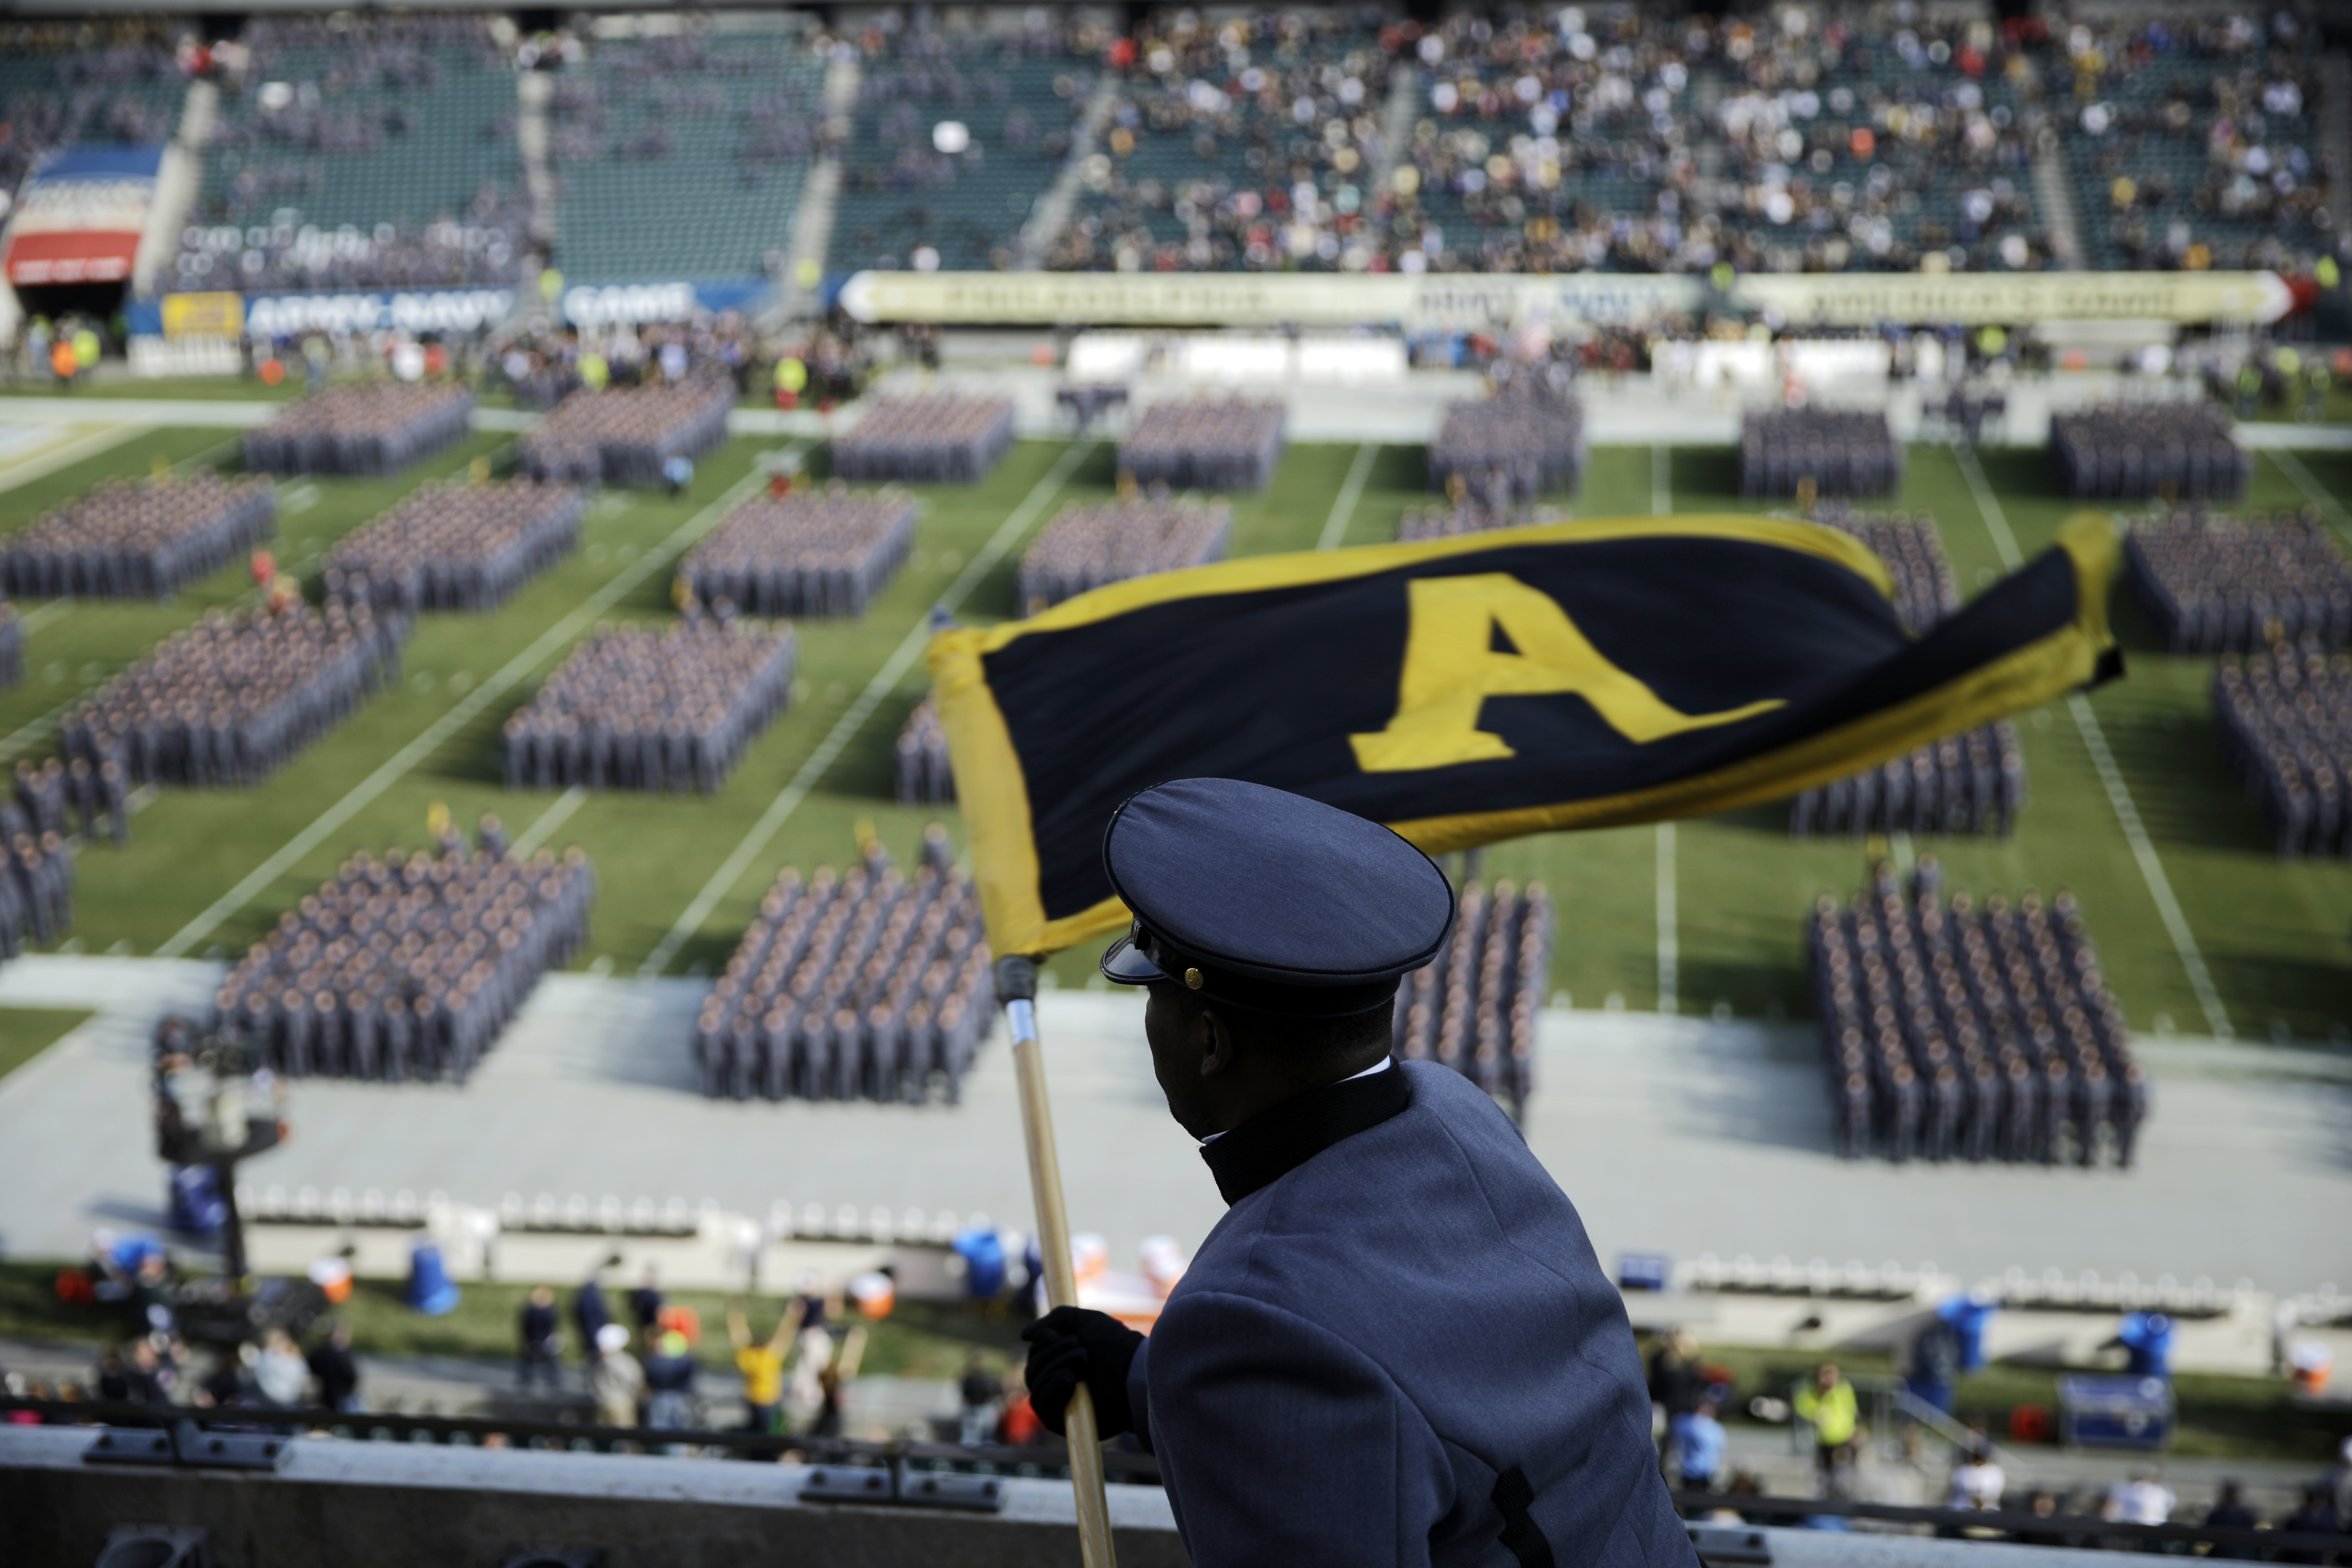 FILE - In this Dec. 12, 2015, file photo, an Army Cadet signals Cadets as they march onto the field before an NCAA college football game against Navy, in Philadelphia. When their football careers end, each player is obligated to begin serving in the milit